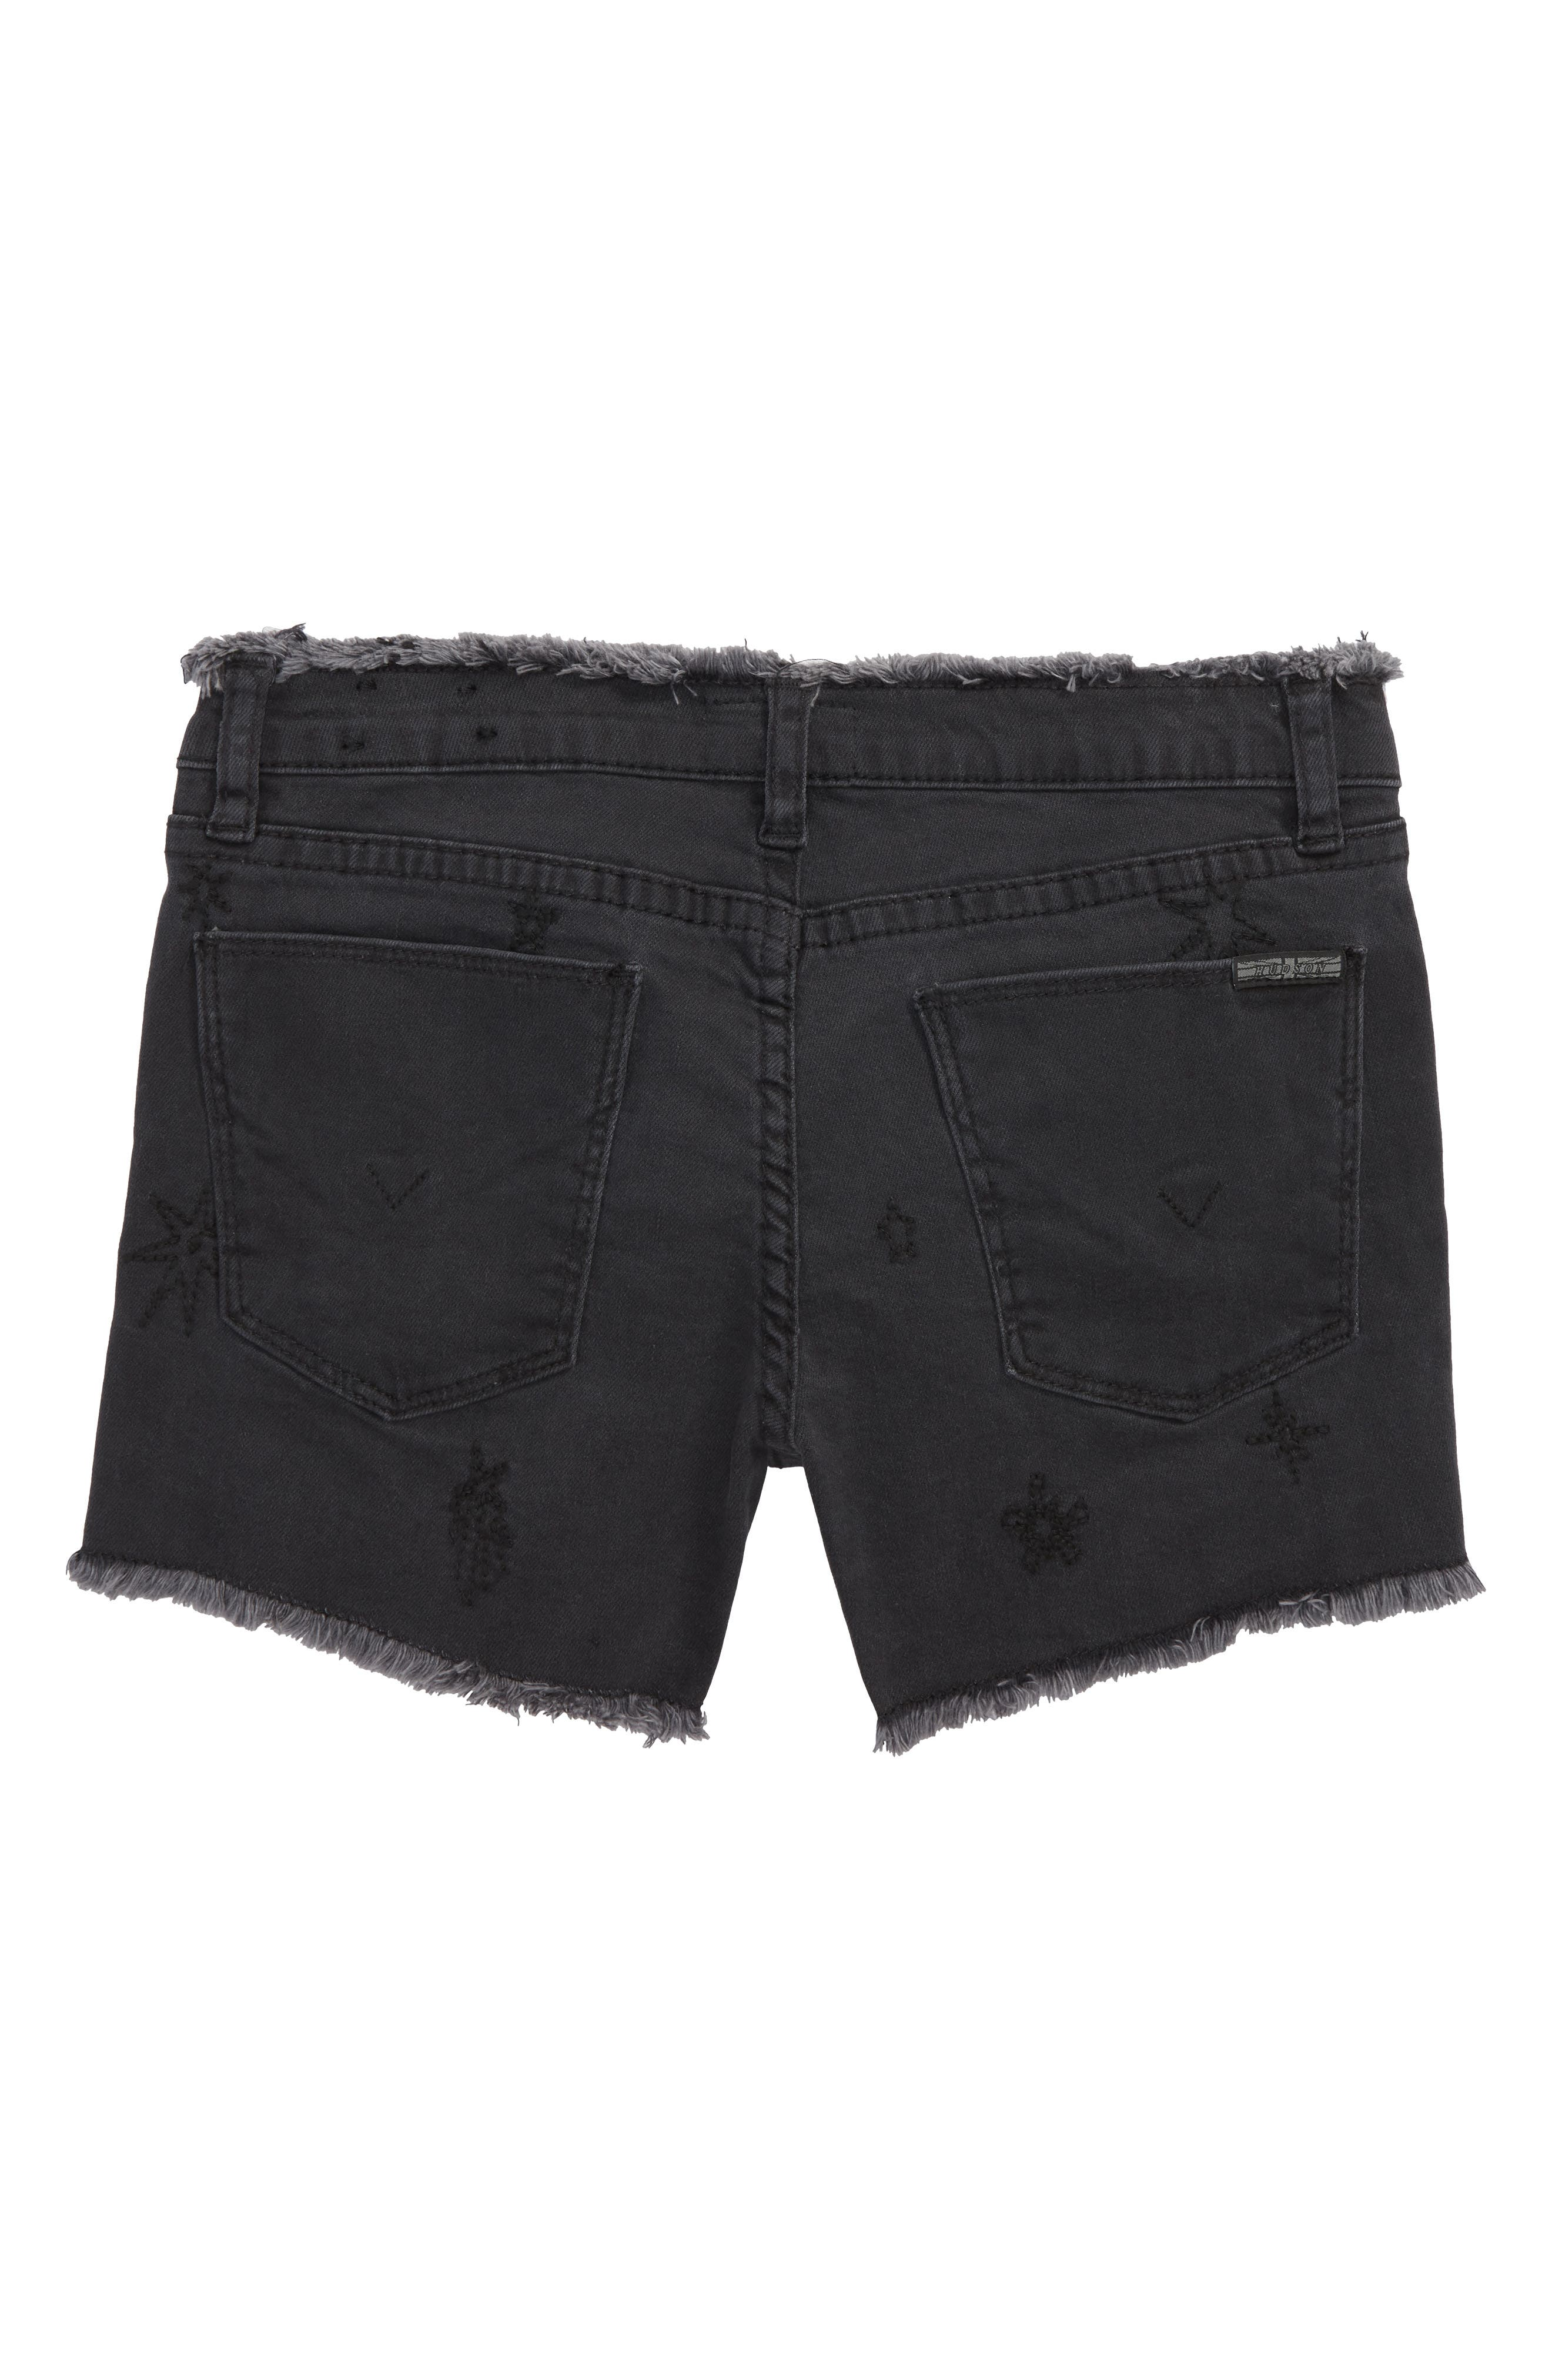 Starry Night Embroidered Cutoff Stretch Twill Shorts,                             Alternate thumbnail 2, color,                             Nhs-Night Sky